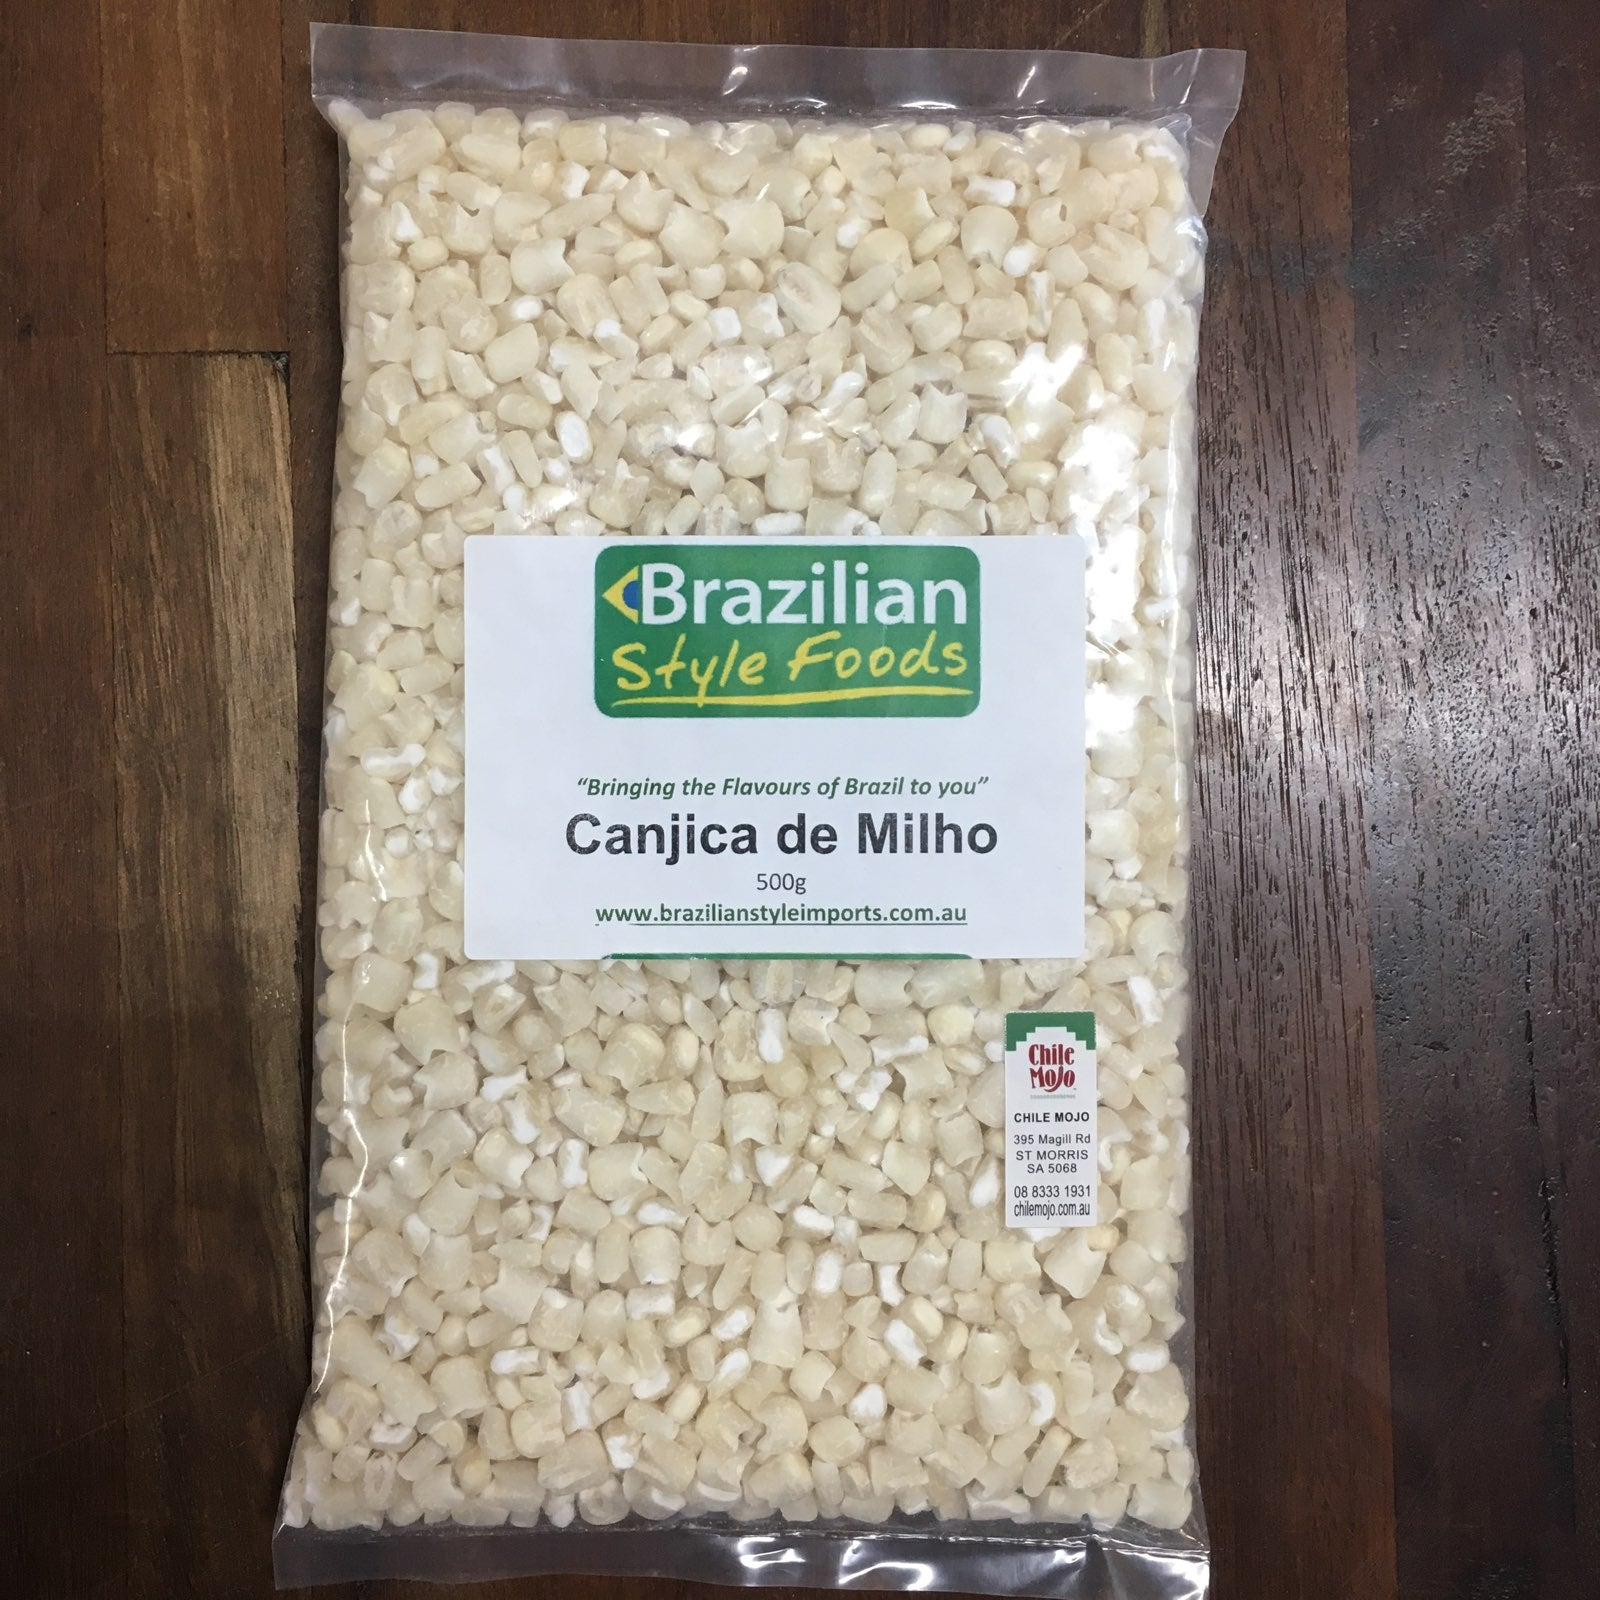 Canjica de Milho Brazilian threshed white maize